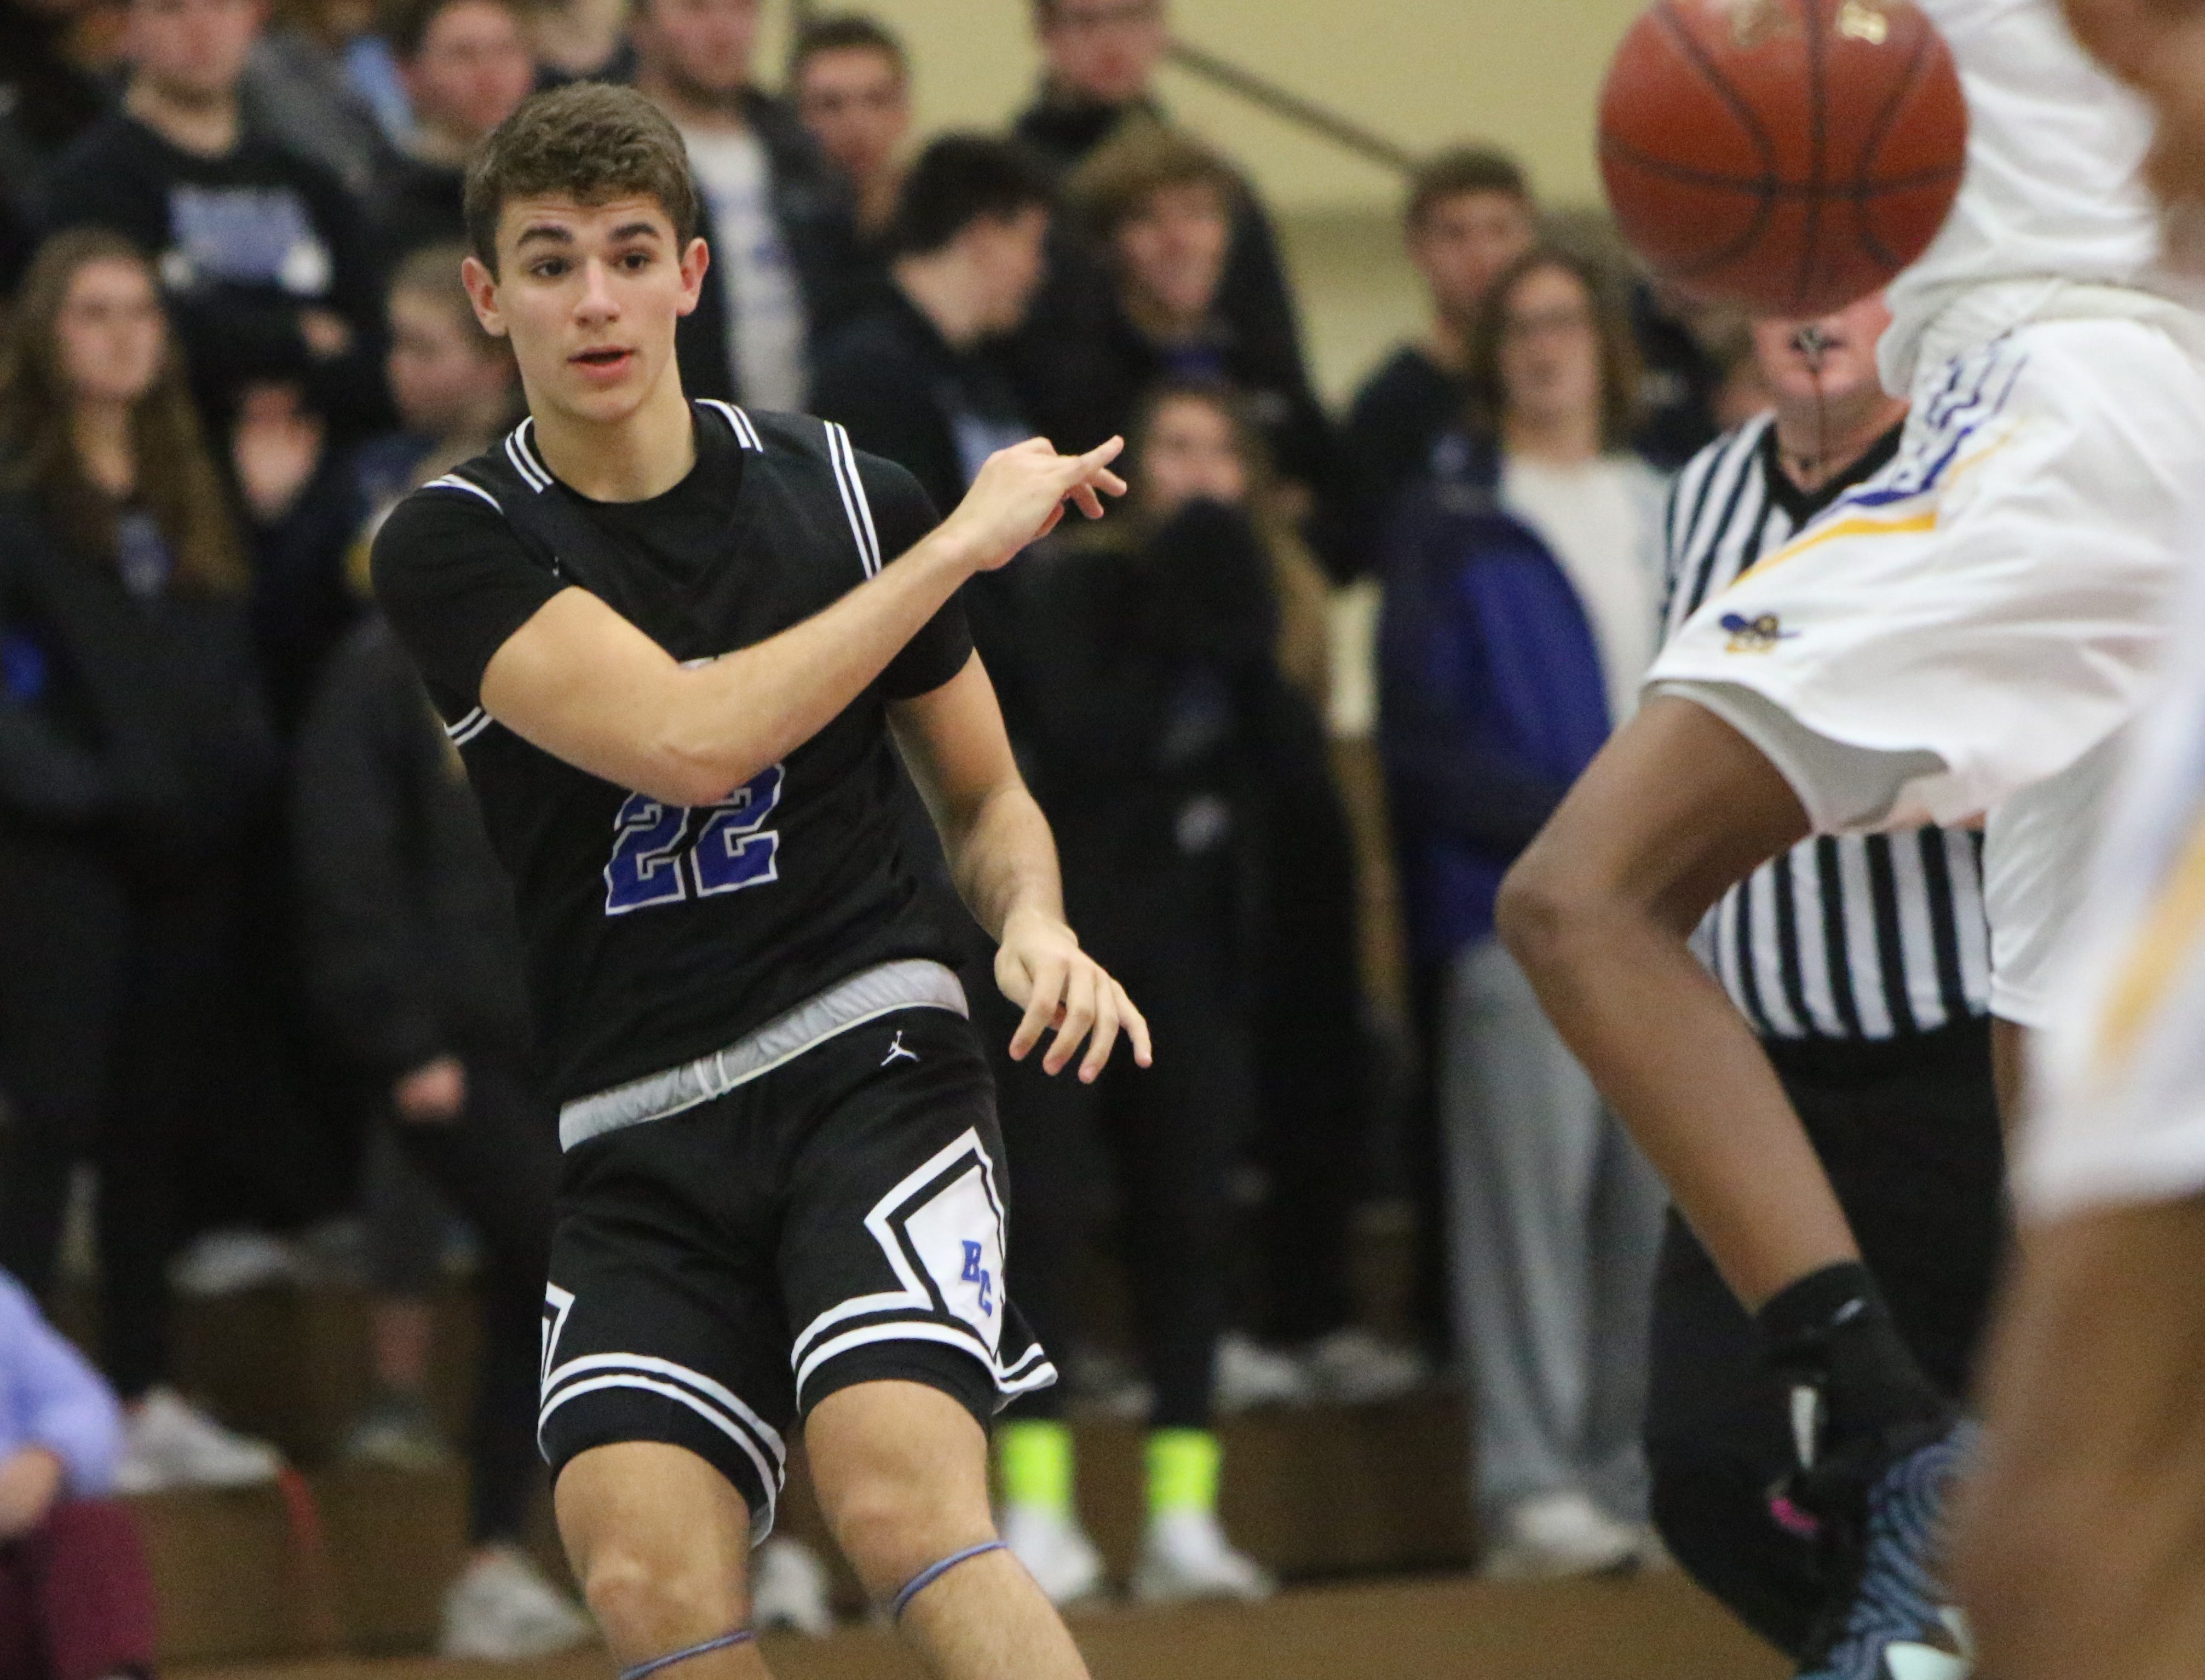 Brookfield Central guard Ben Nau whips a pass up the court against Milwaukee King during the Terry Porter Classic on Saturday.